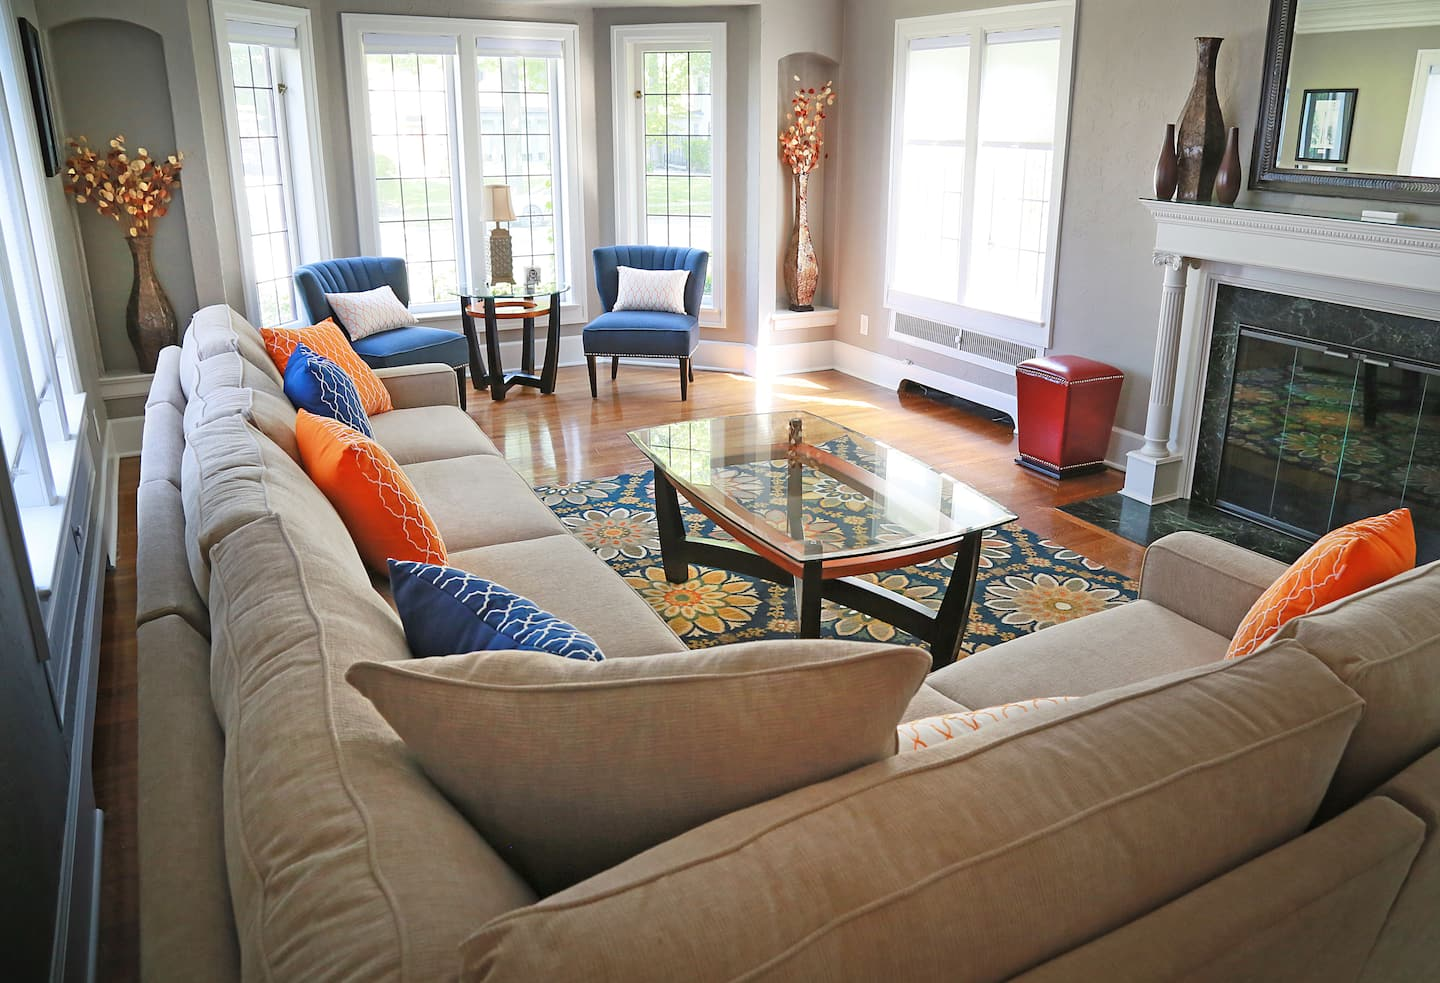 Comfortable Living Room Sofa and Window Seating | Angie\'s List